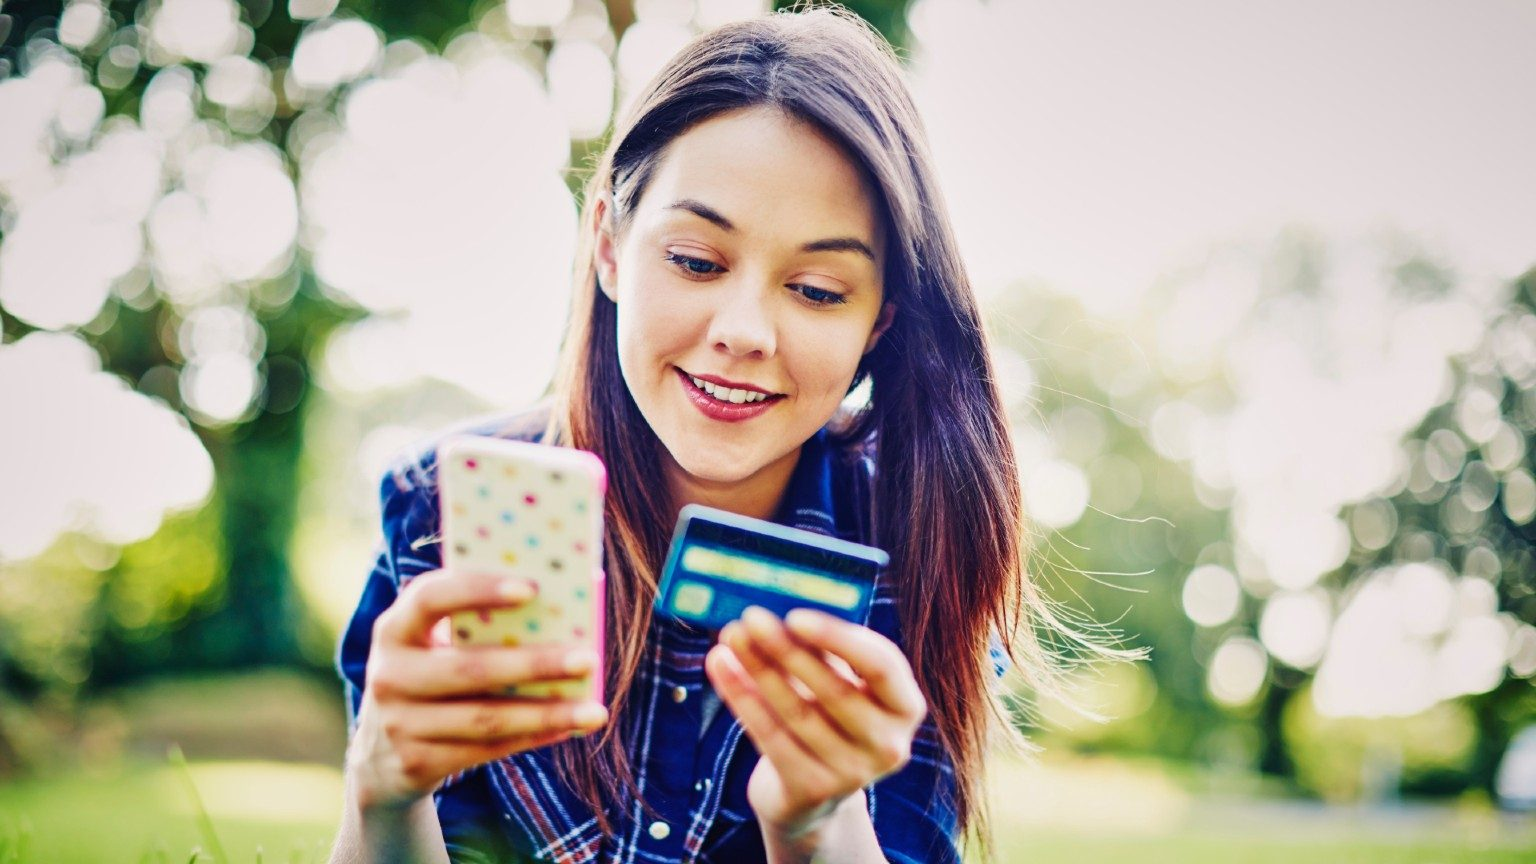 Young woman in park using bank card and phone.